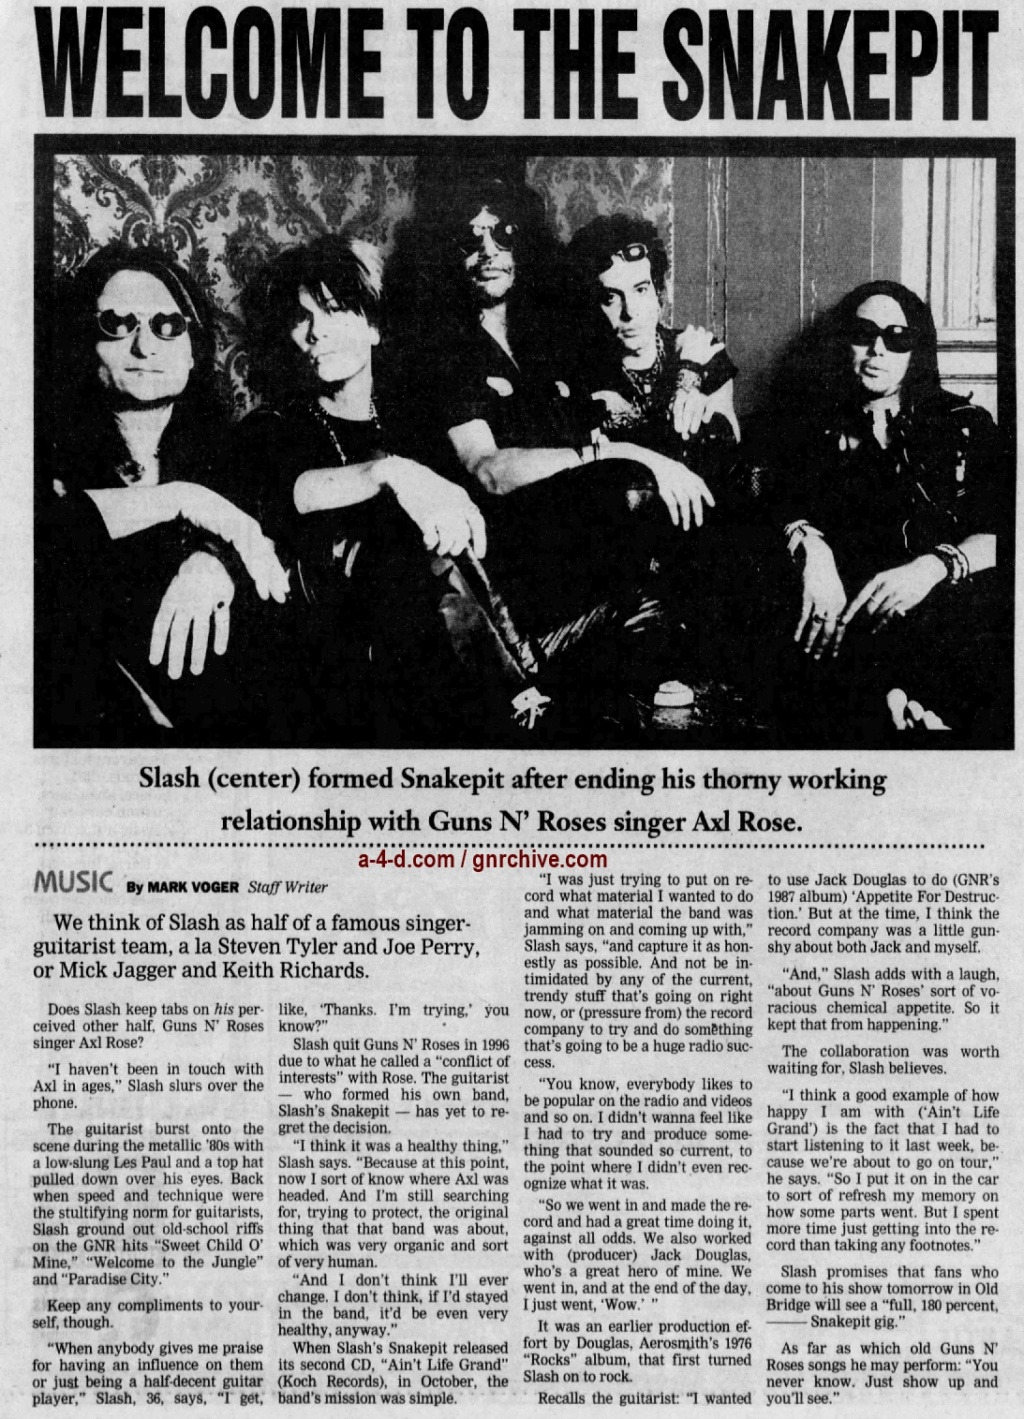 2001.06.22 - Ashbury Park Press - Welcome To The Snakepit (Slash) 2001_042